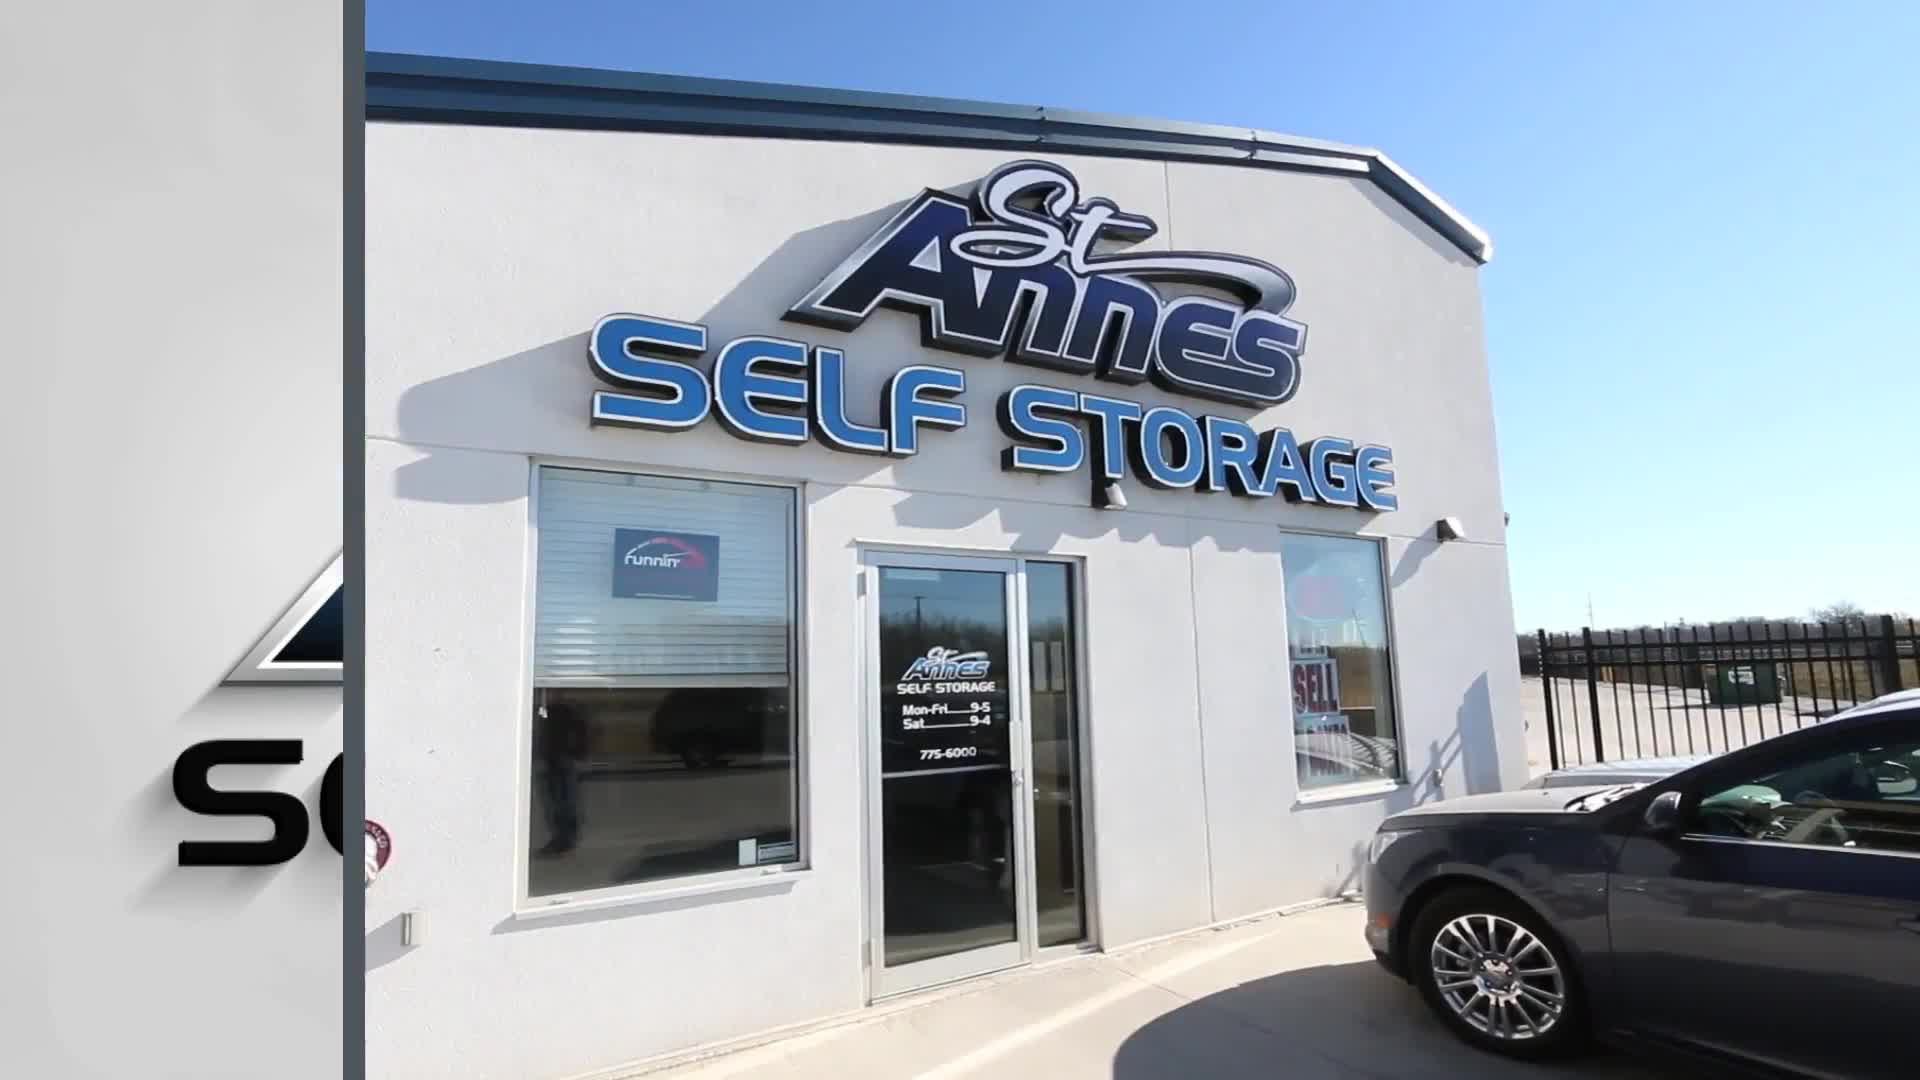 St Anne's Self Storage - Self-Storage - 204-775-6000